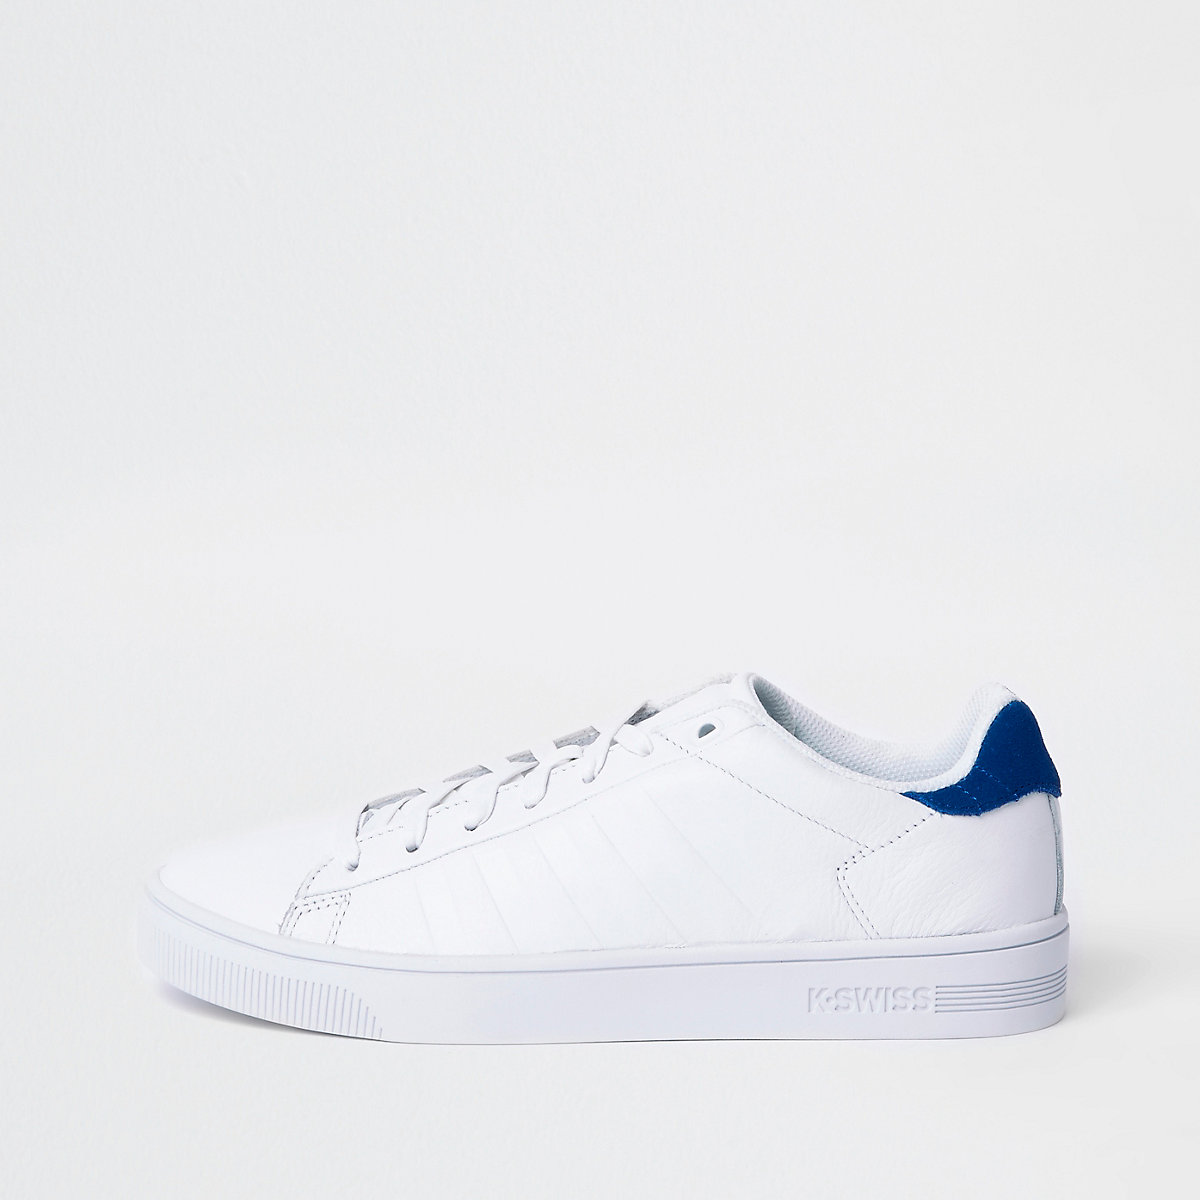 K-Swiss white low top cupsole trainers